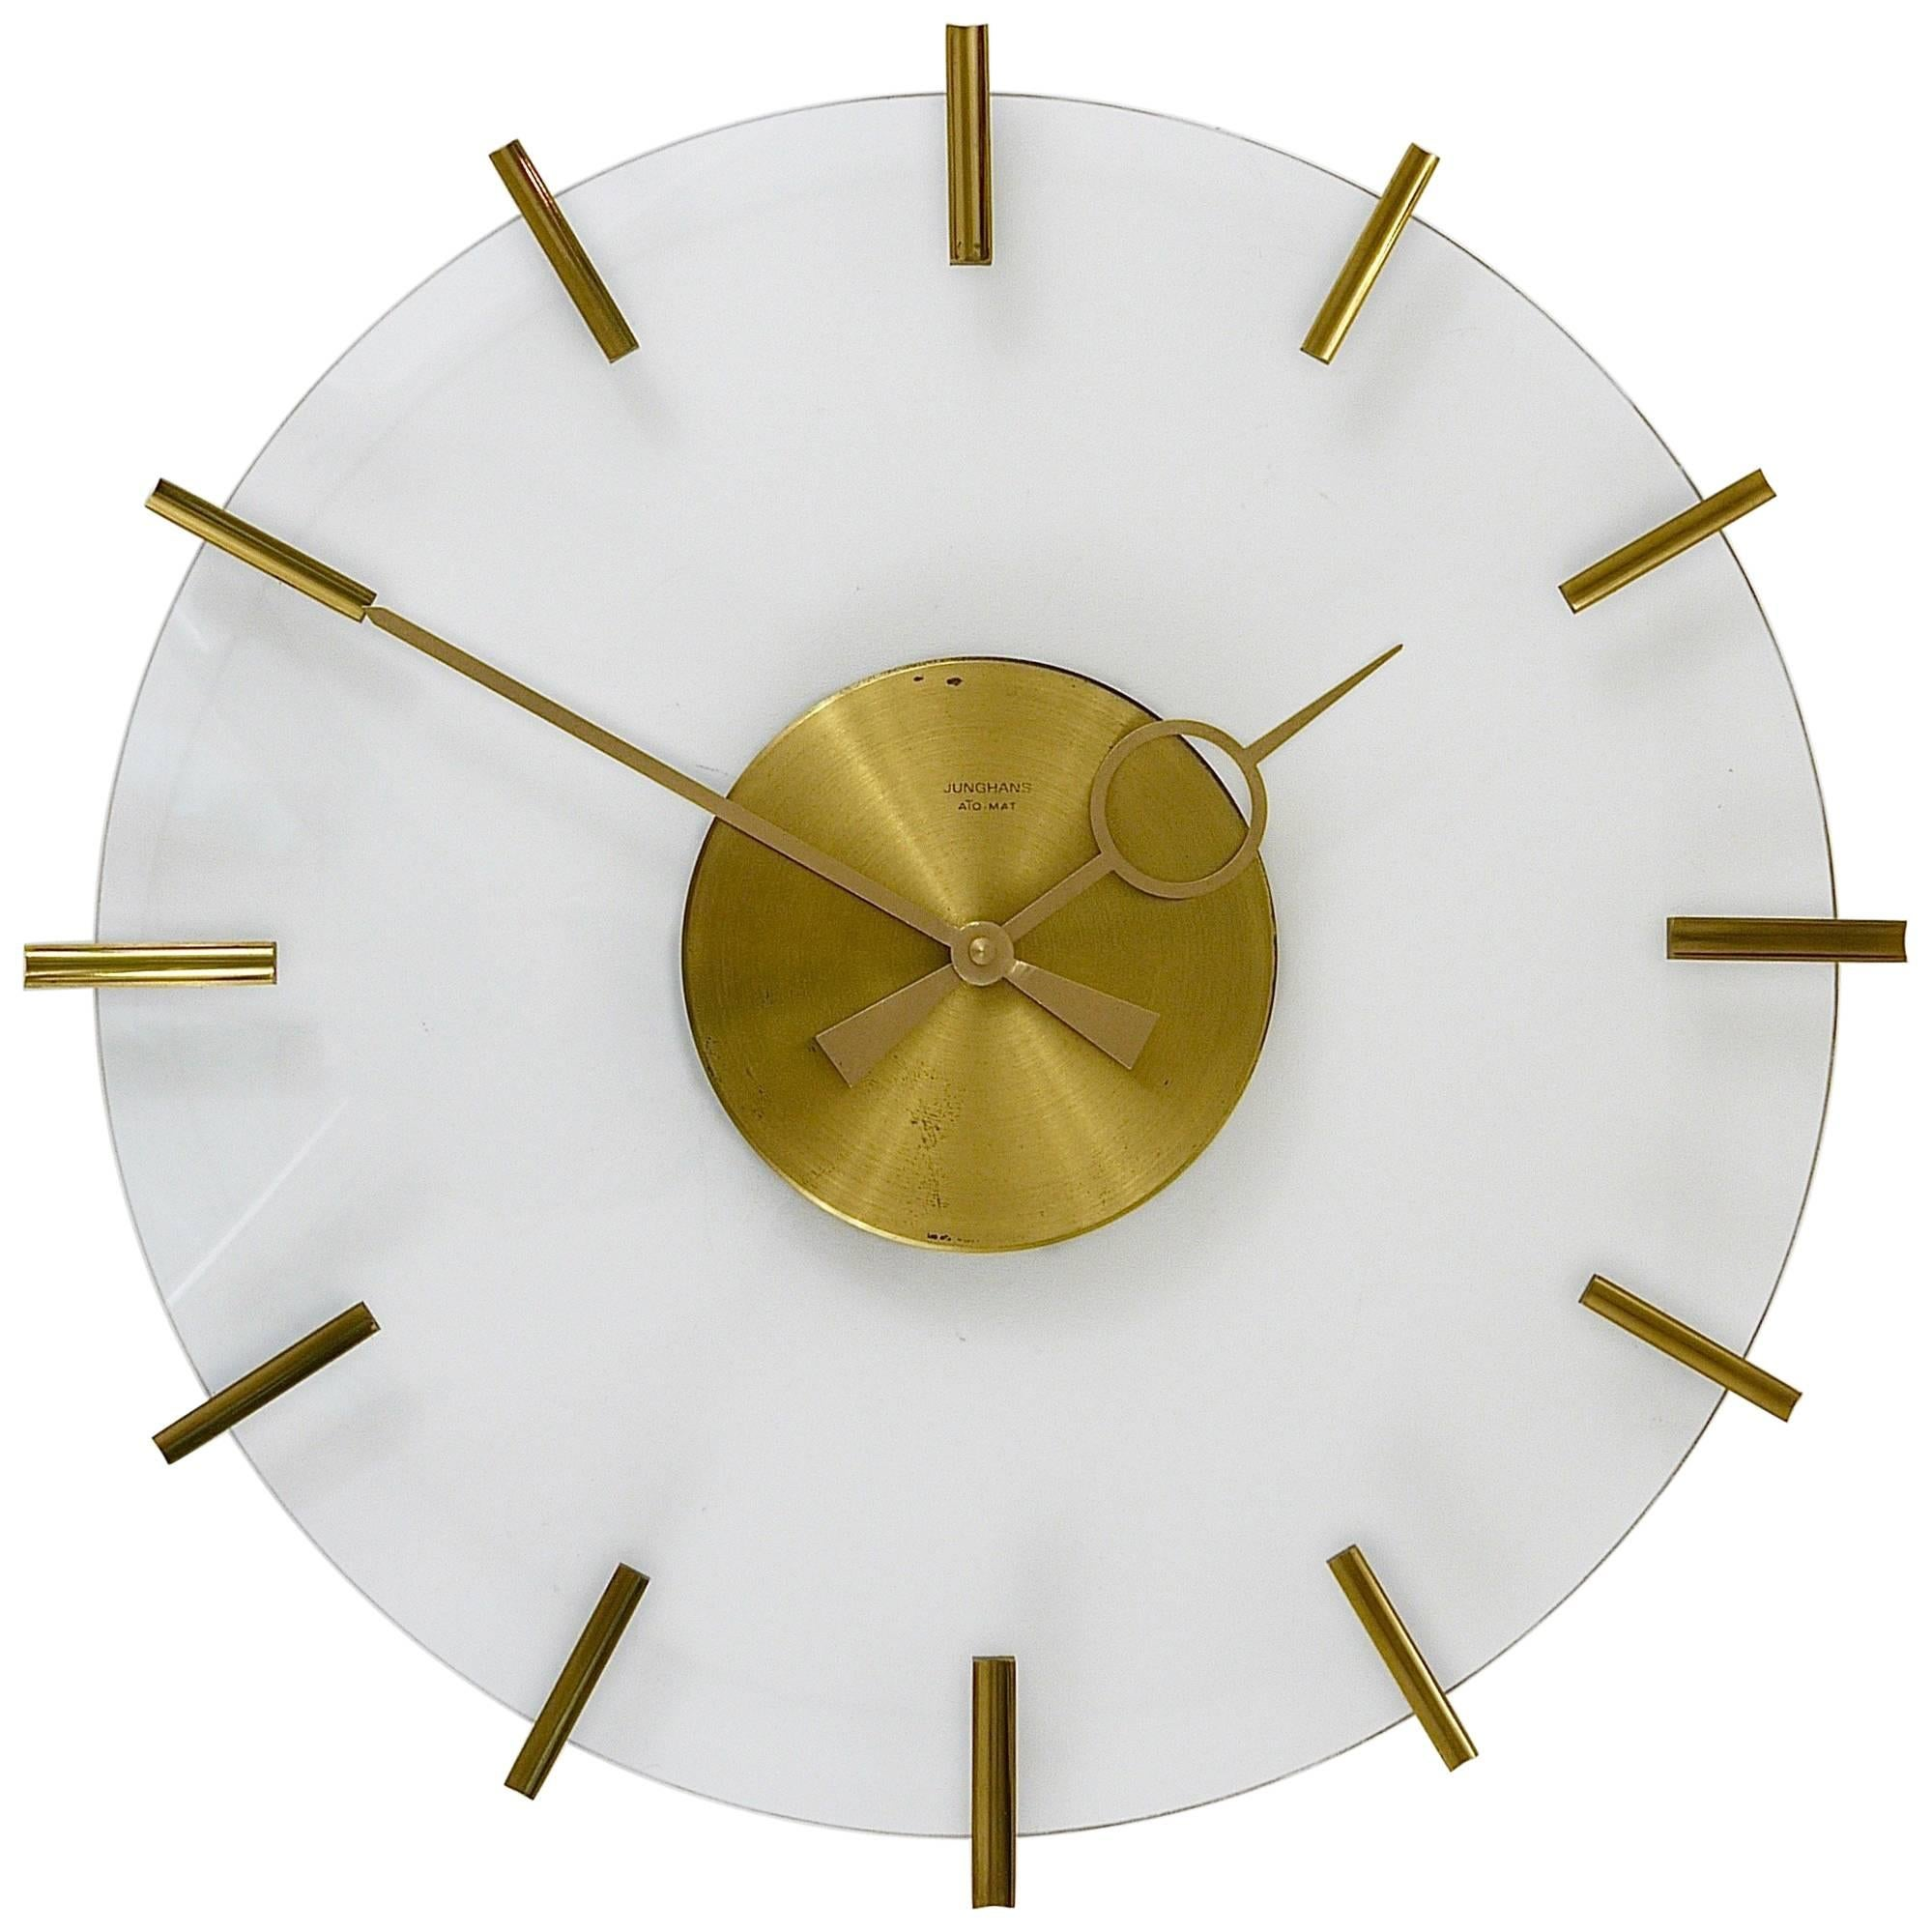 junghans atomat lucite brass midcentury sun wall clock germany 1950s